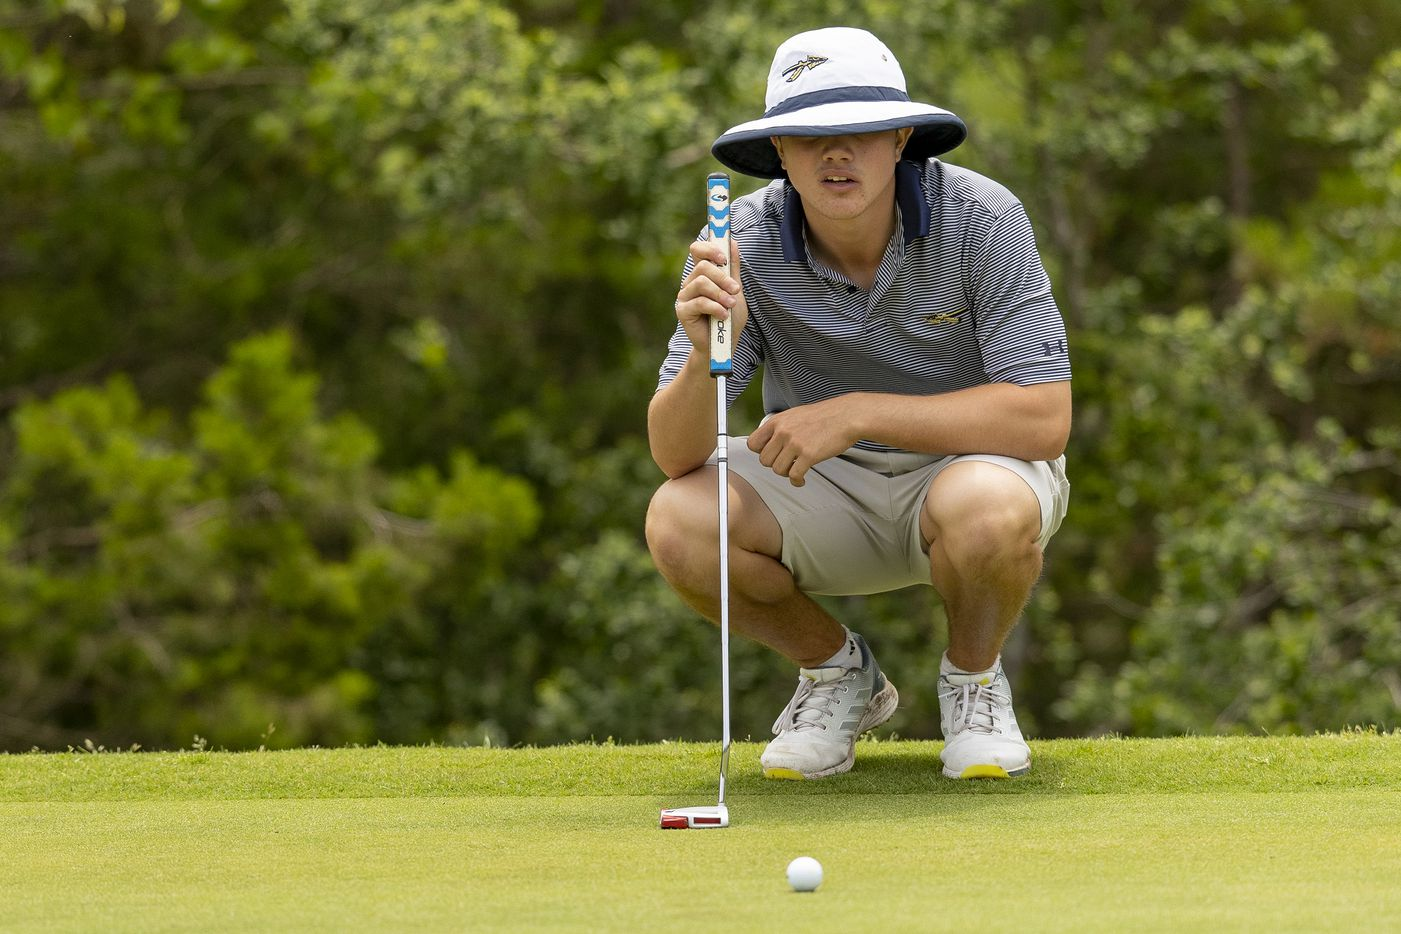 KellerÕs Kaelen Dulany studies his shot on the 14th green during the final round of the UIL Class 6A boys golf tournament in Georgetown, Tuesday, May 18, 2021. (Stephen Spillman/Special Contributor)